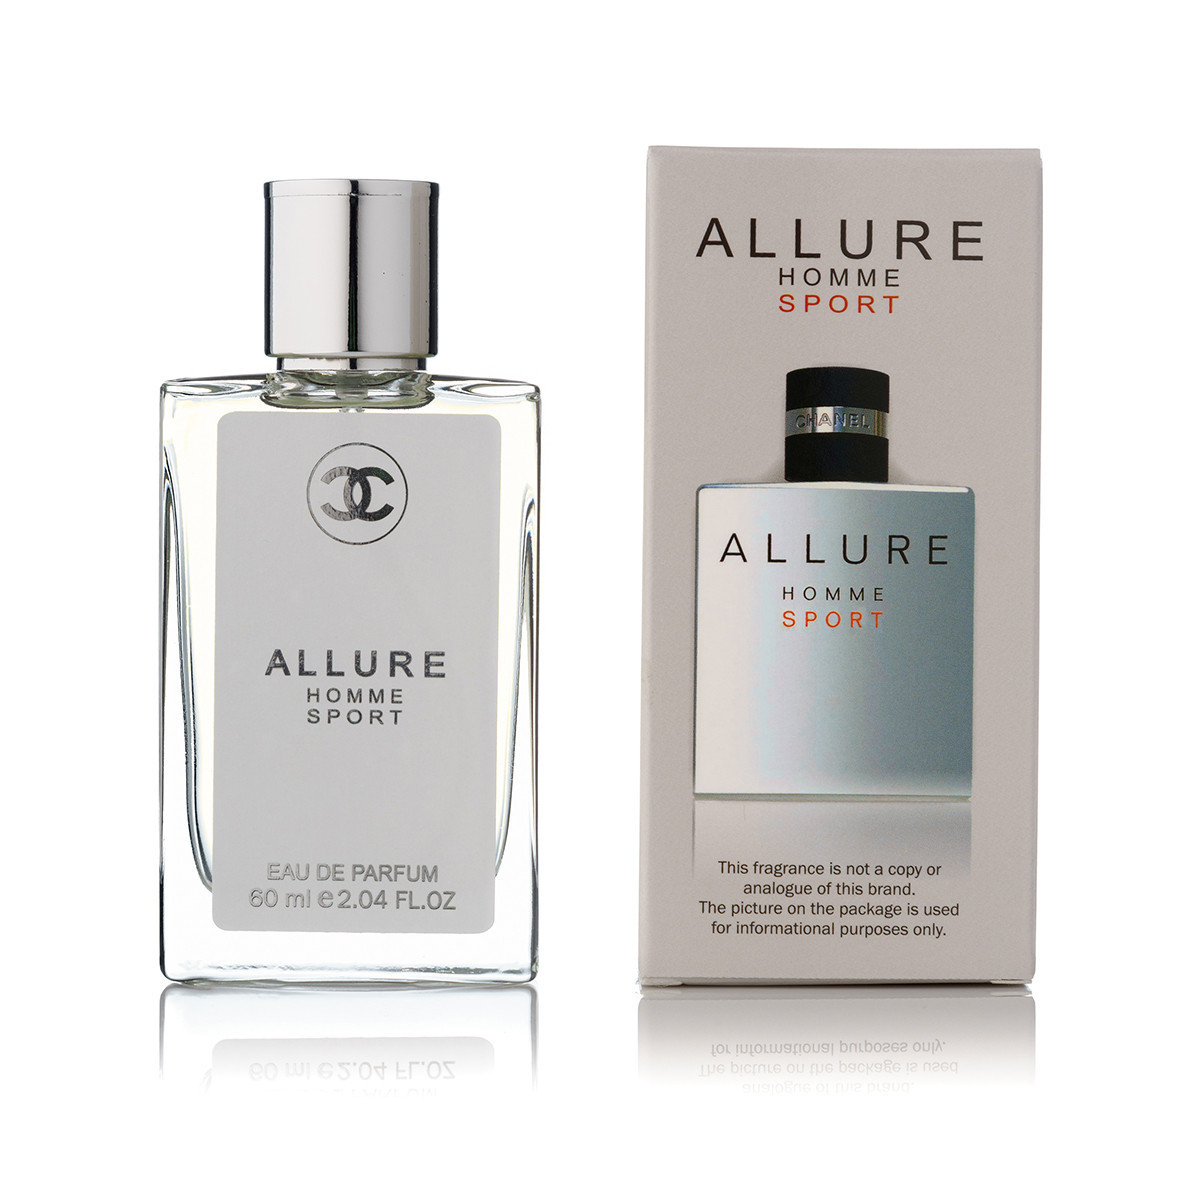 Chanel Allure Homme Sport - Travel Spray 60ml